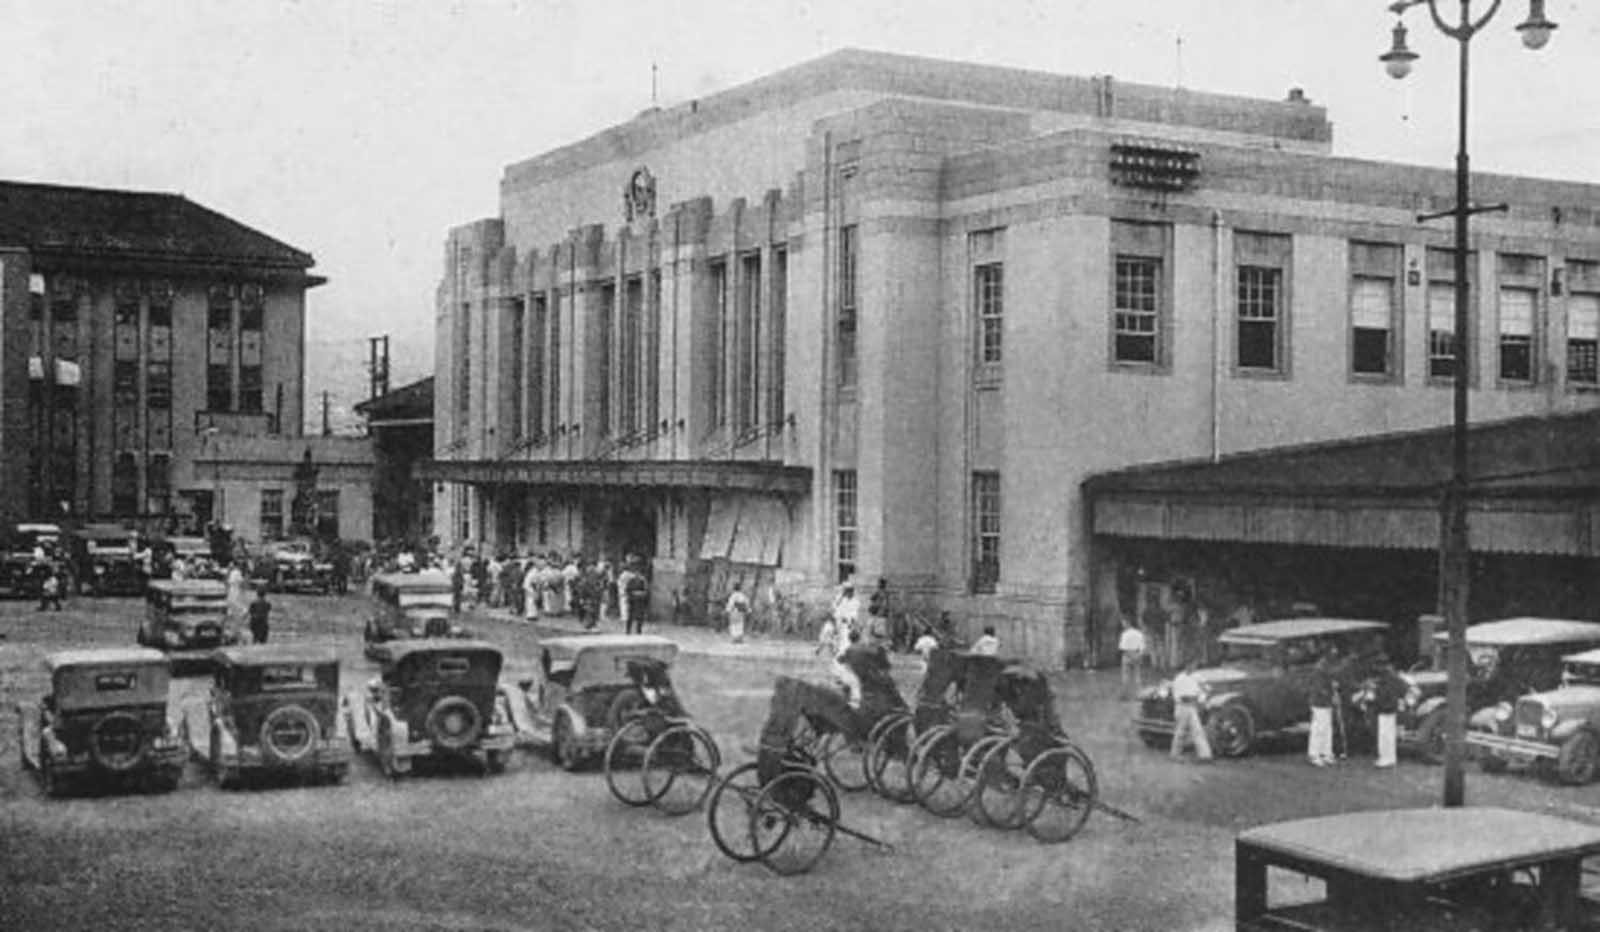 Hiroshima Station, between 1912 and 1945.